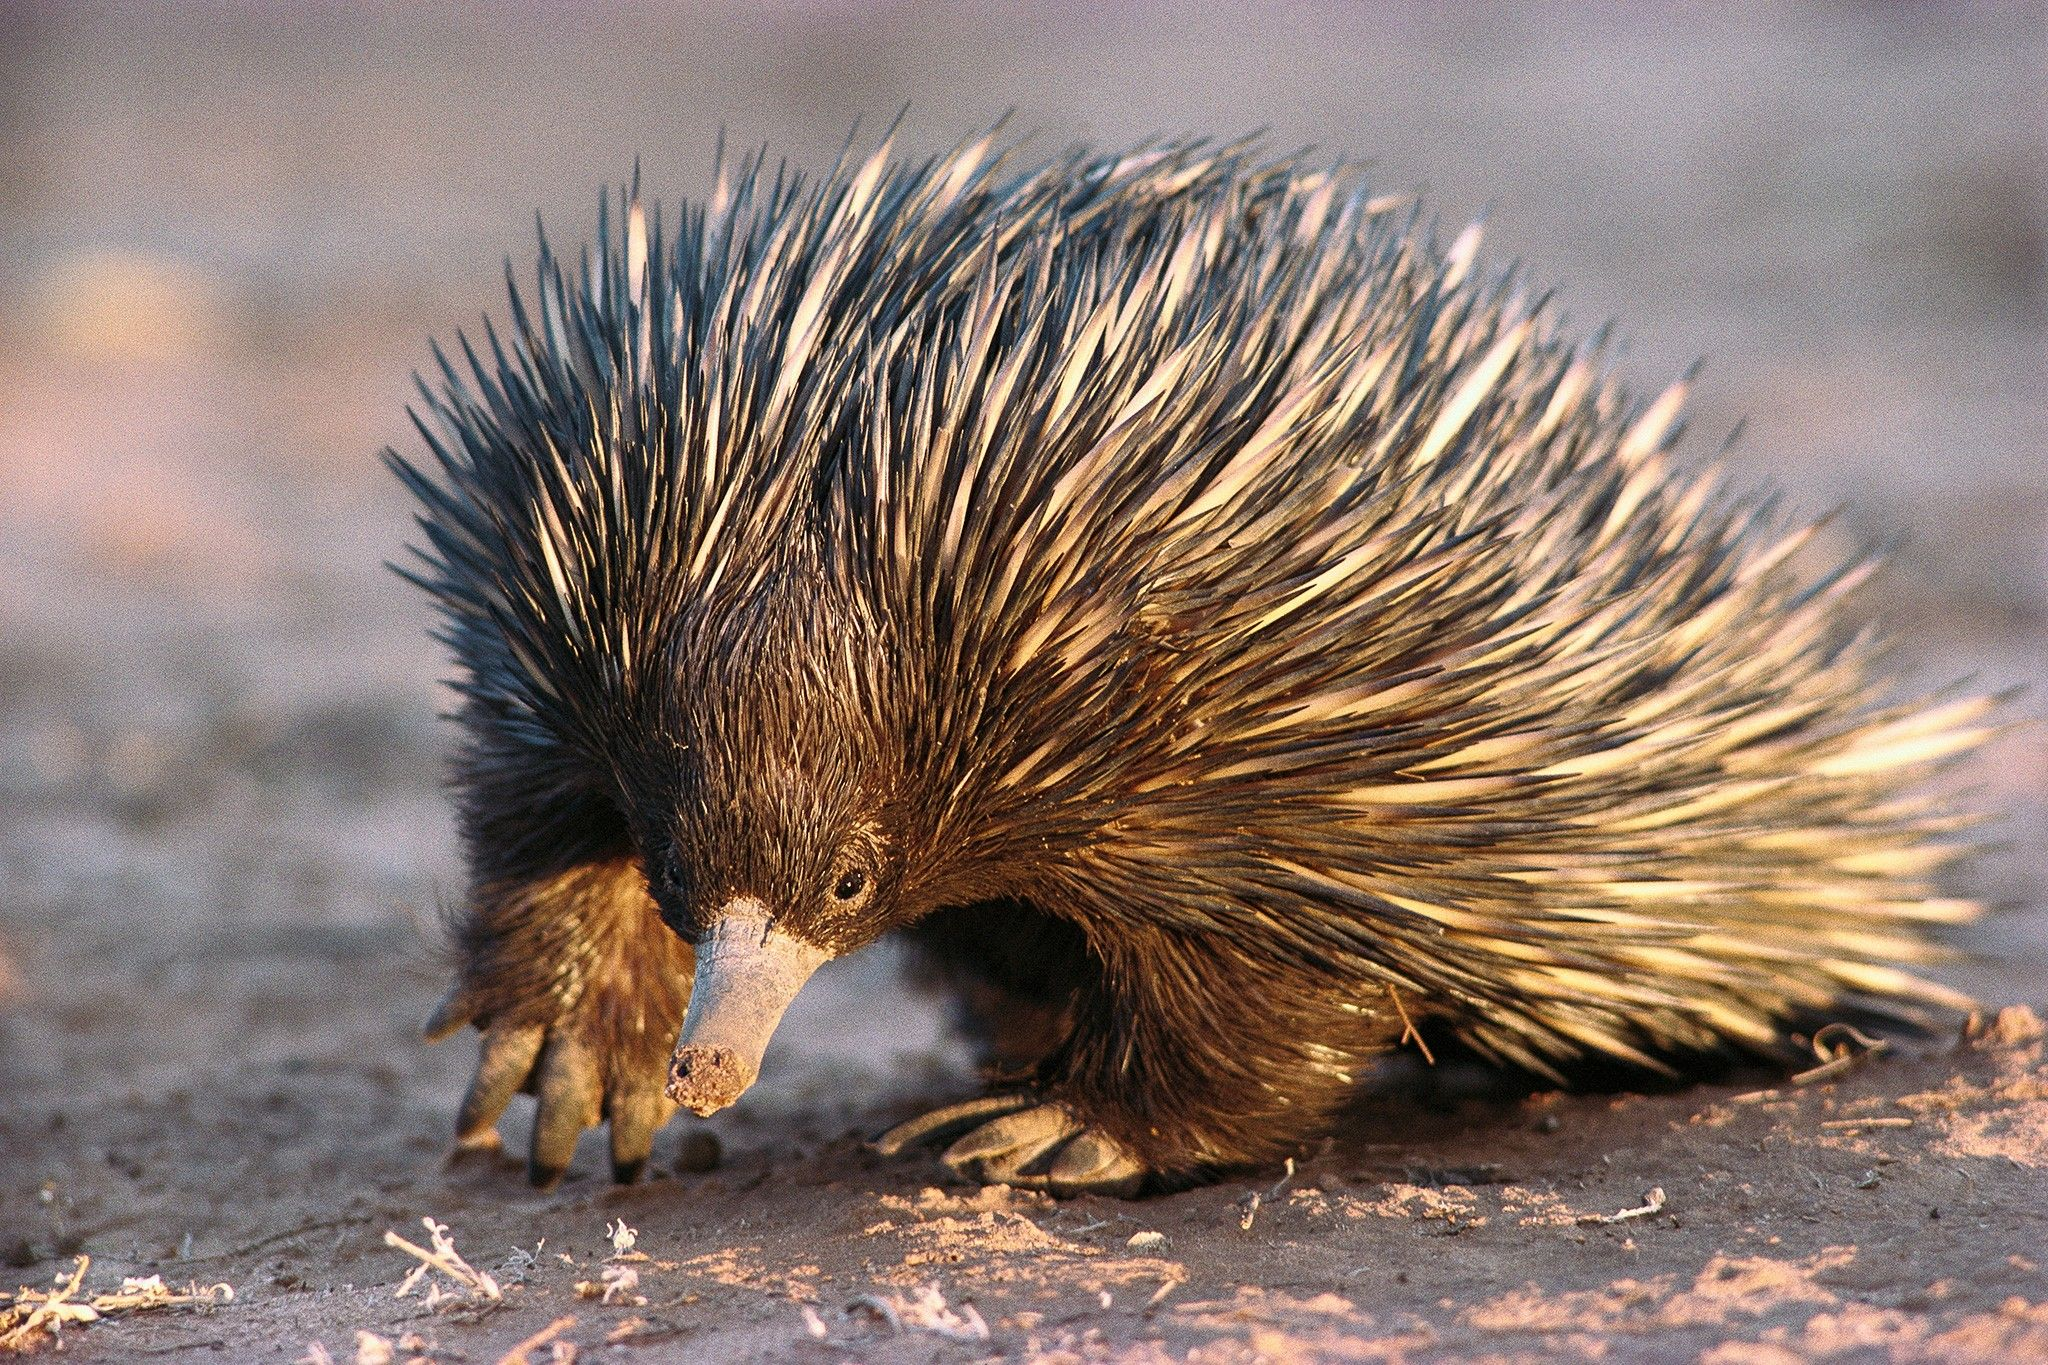 There's no way these cute, spiny creatures are all sold legally | National Geographic